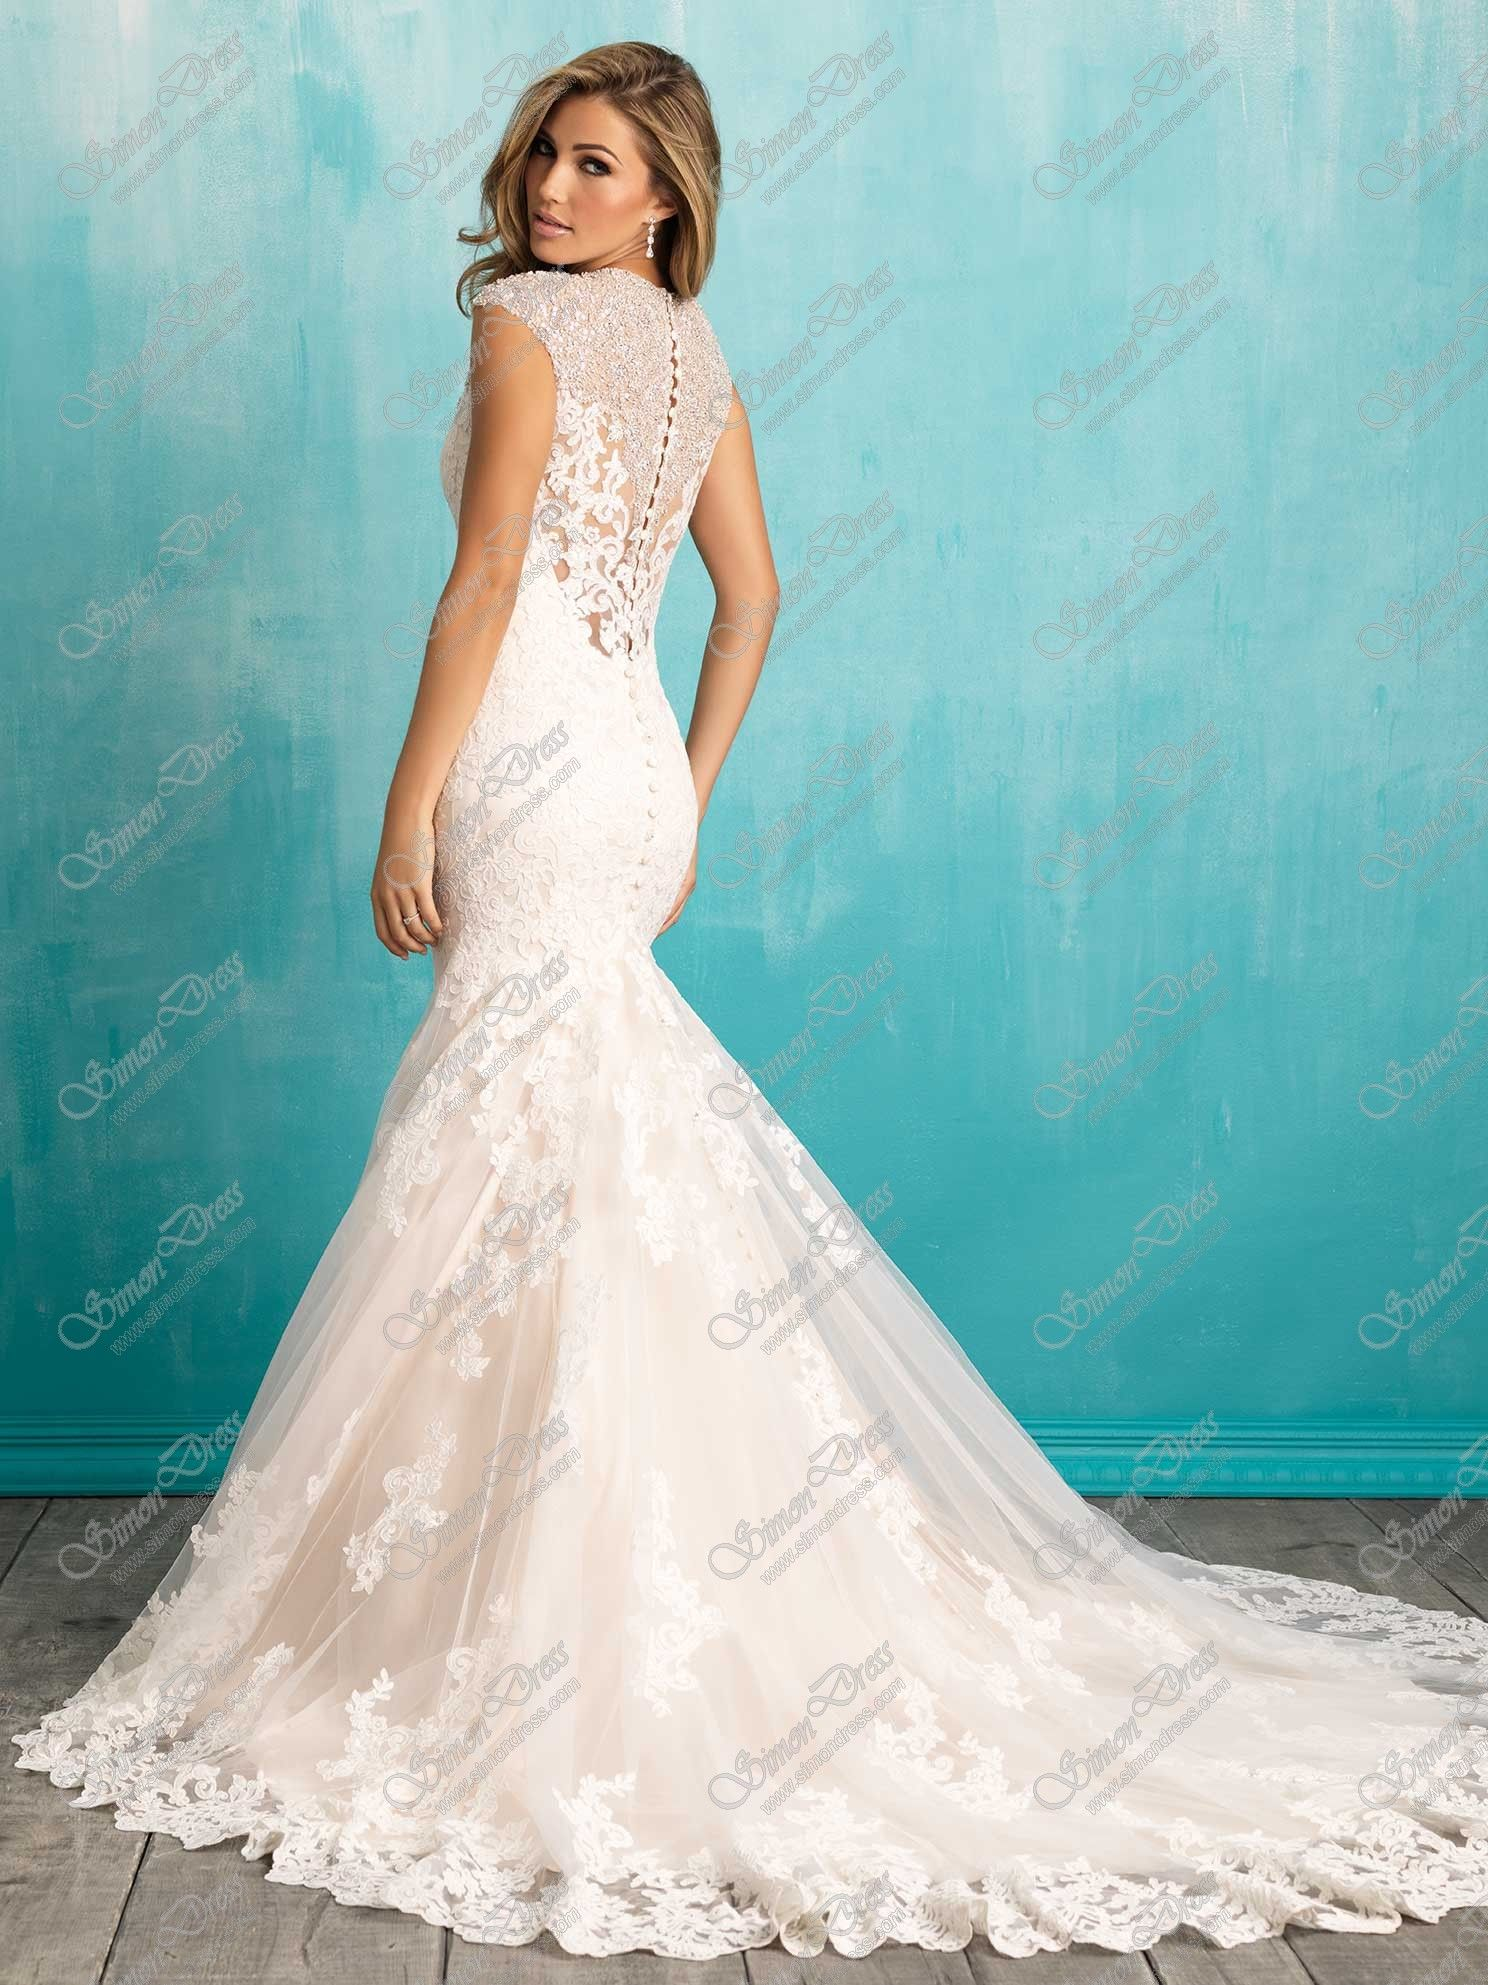 Allure bridals wedding dress style unique weddings